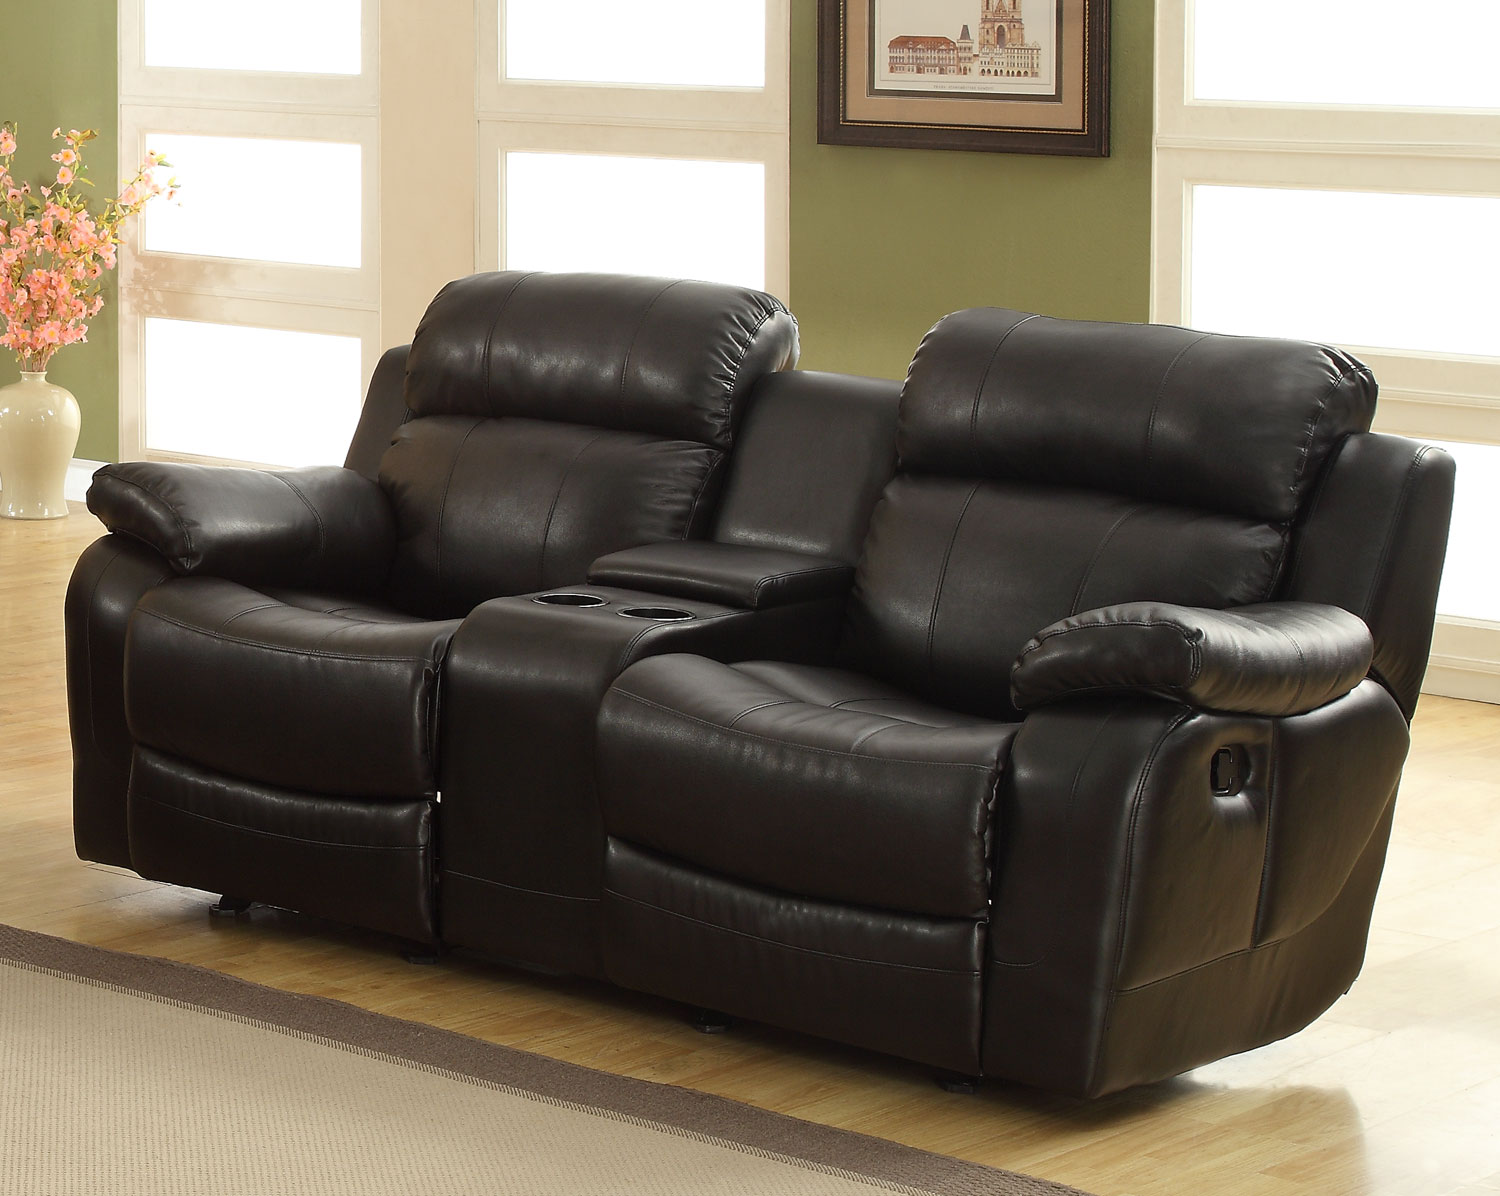 Homelegance Marille Love Seat Glider Recliner With Center Console Black Bonded Leather Match